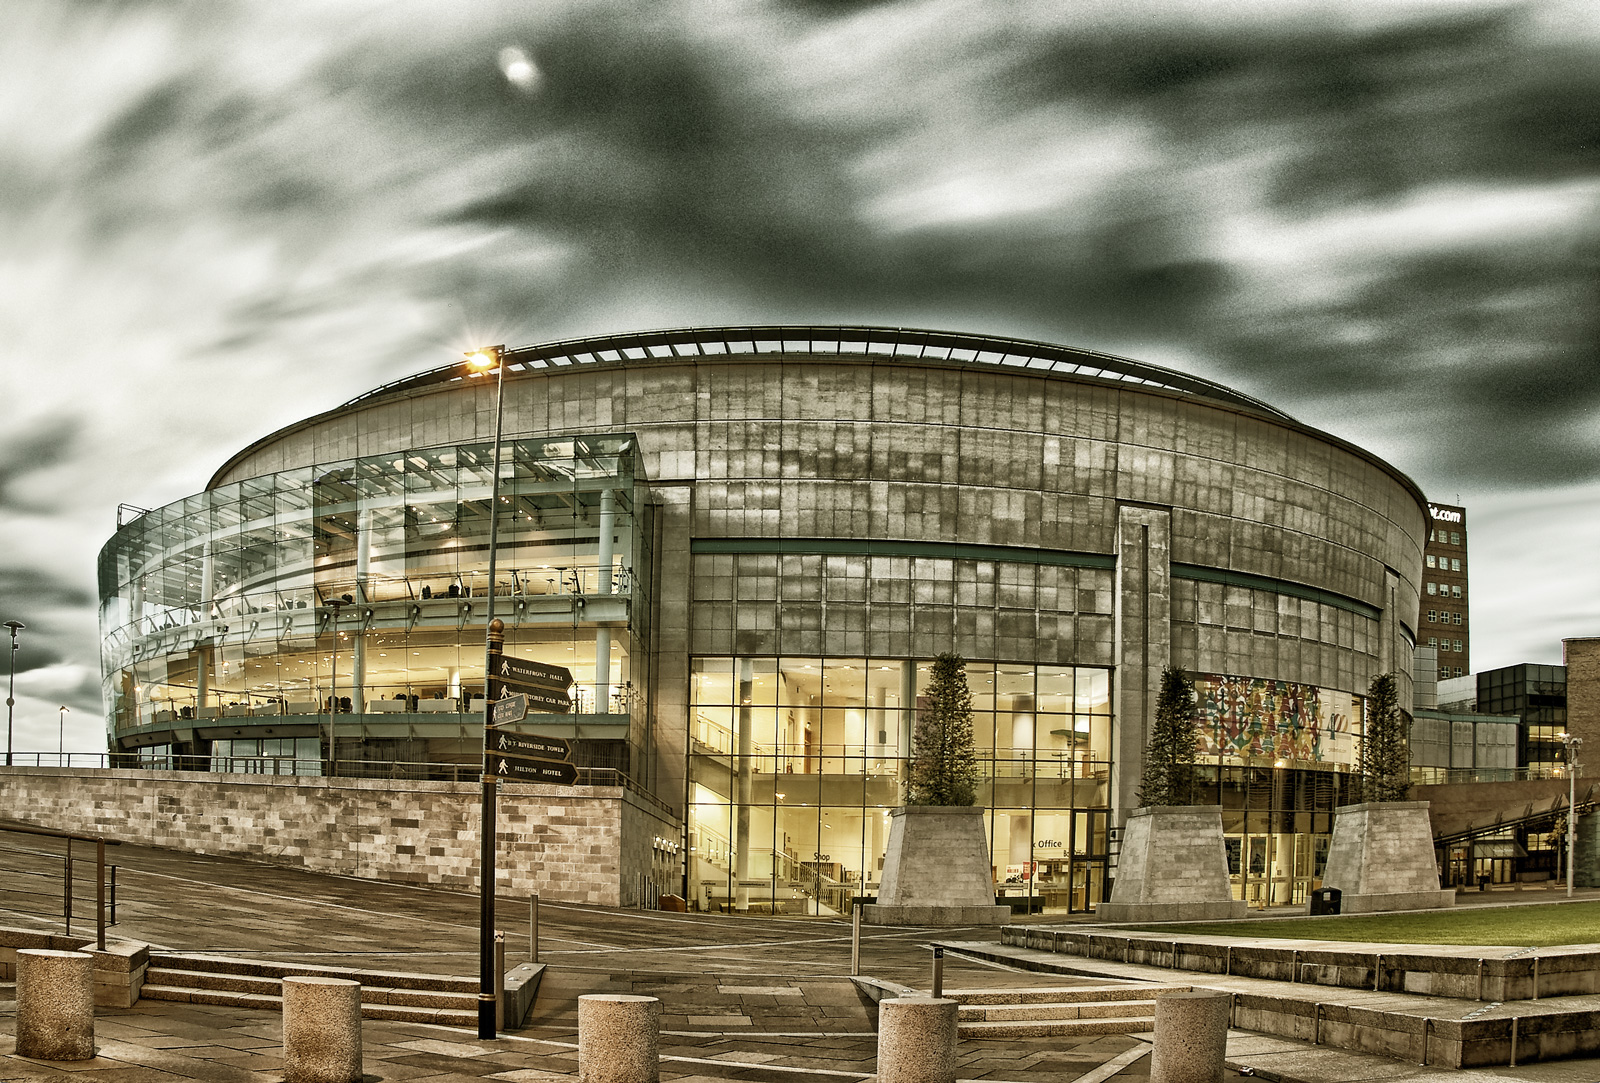 Waterfront Hall, Belfast, by Geoff McGrath Photography